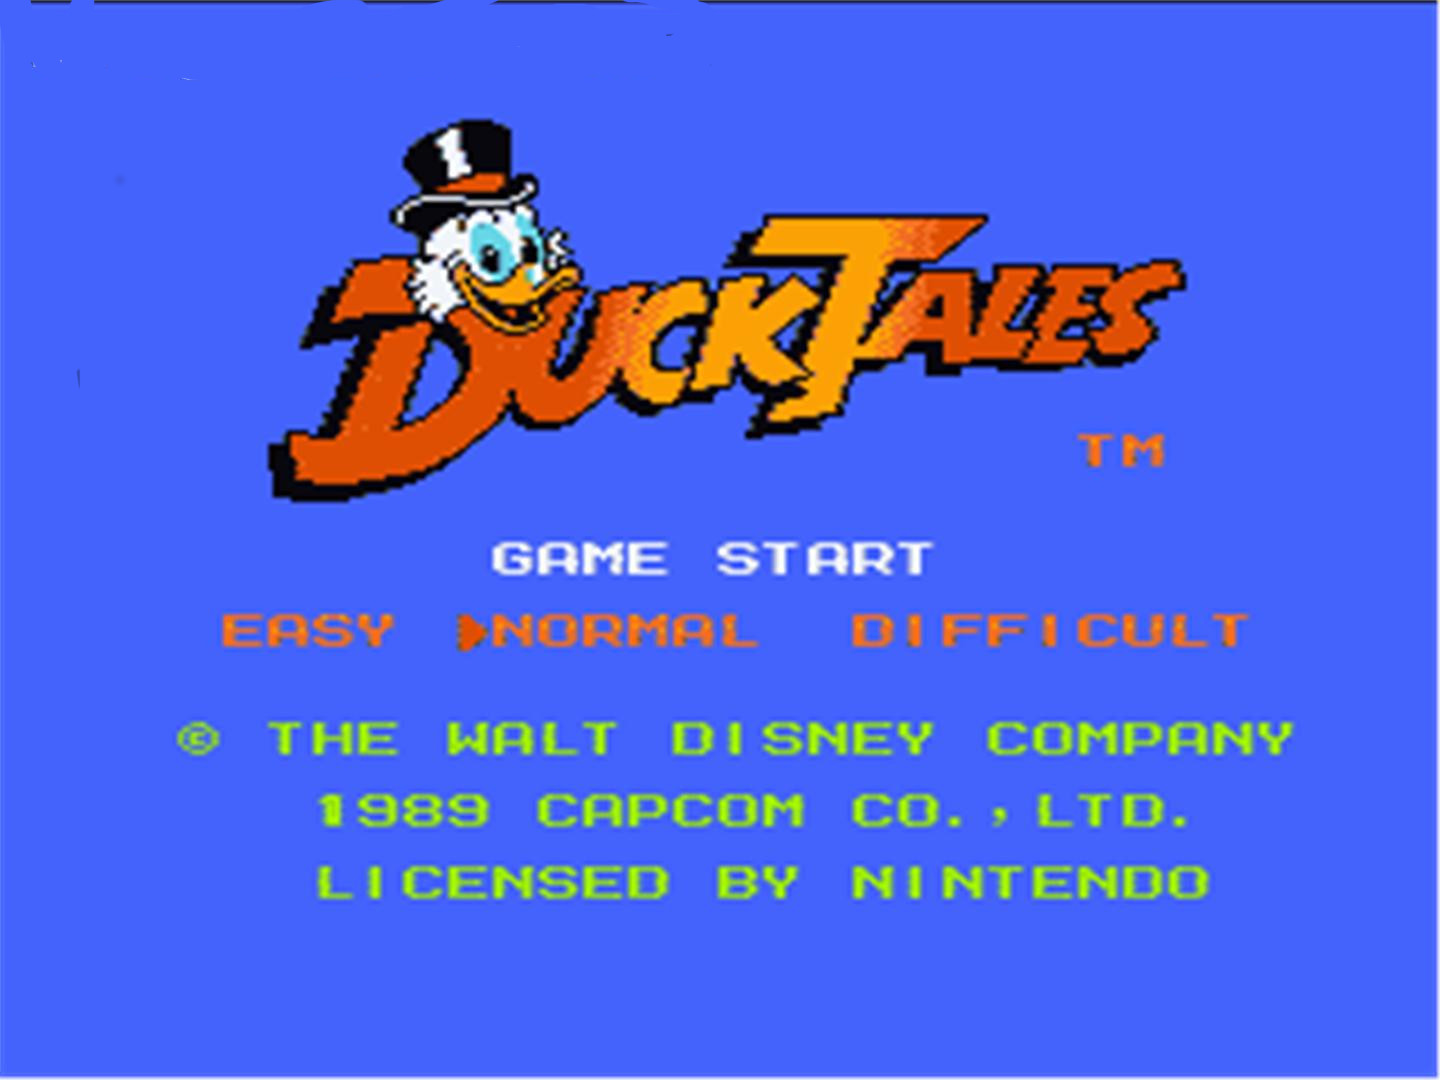 Duck_Tales_-_1989_-_Capcom_Co.,_Ltd.